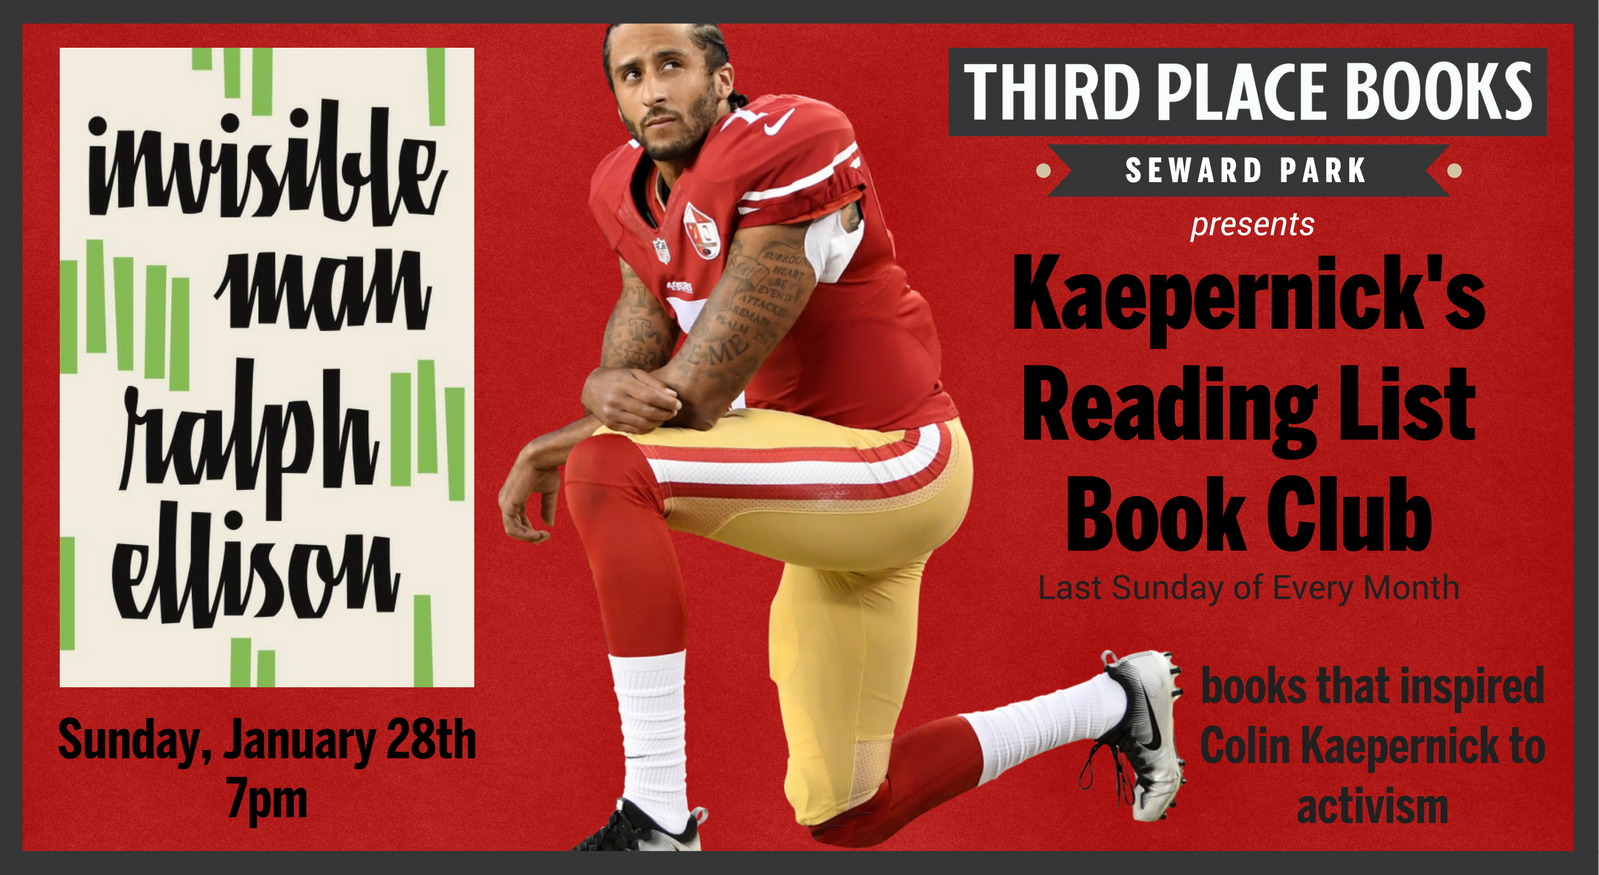 kaepernicks reading list book club find polling place by address places to cash checks late night